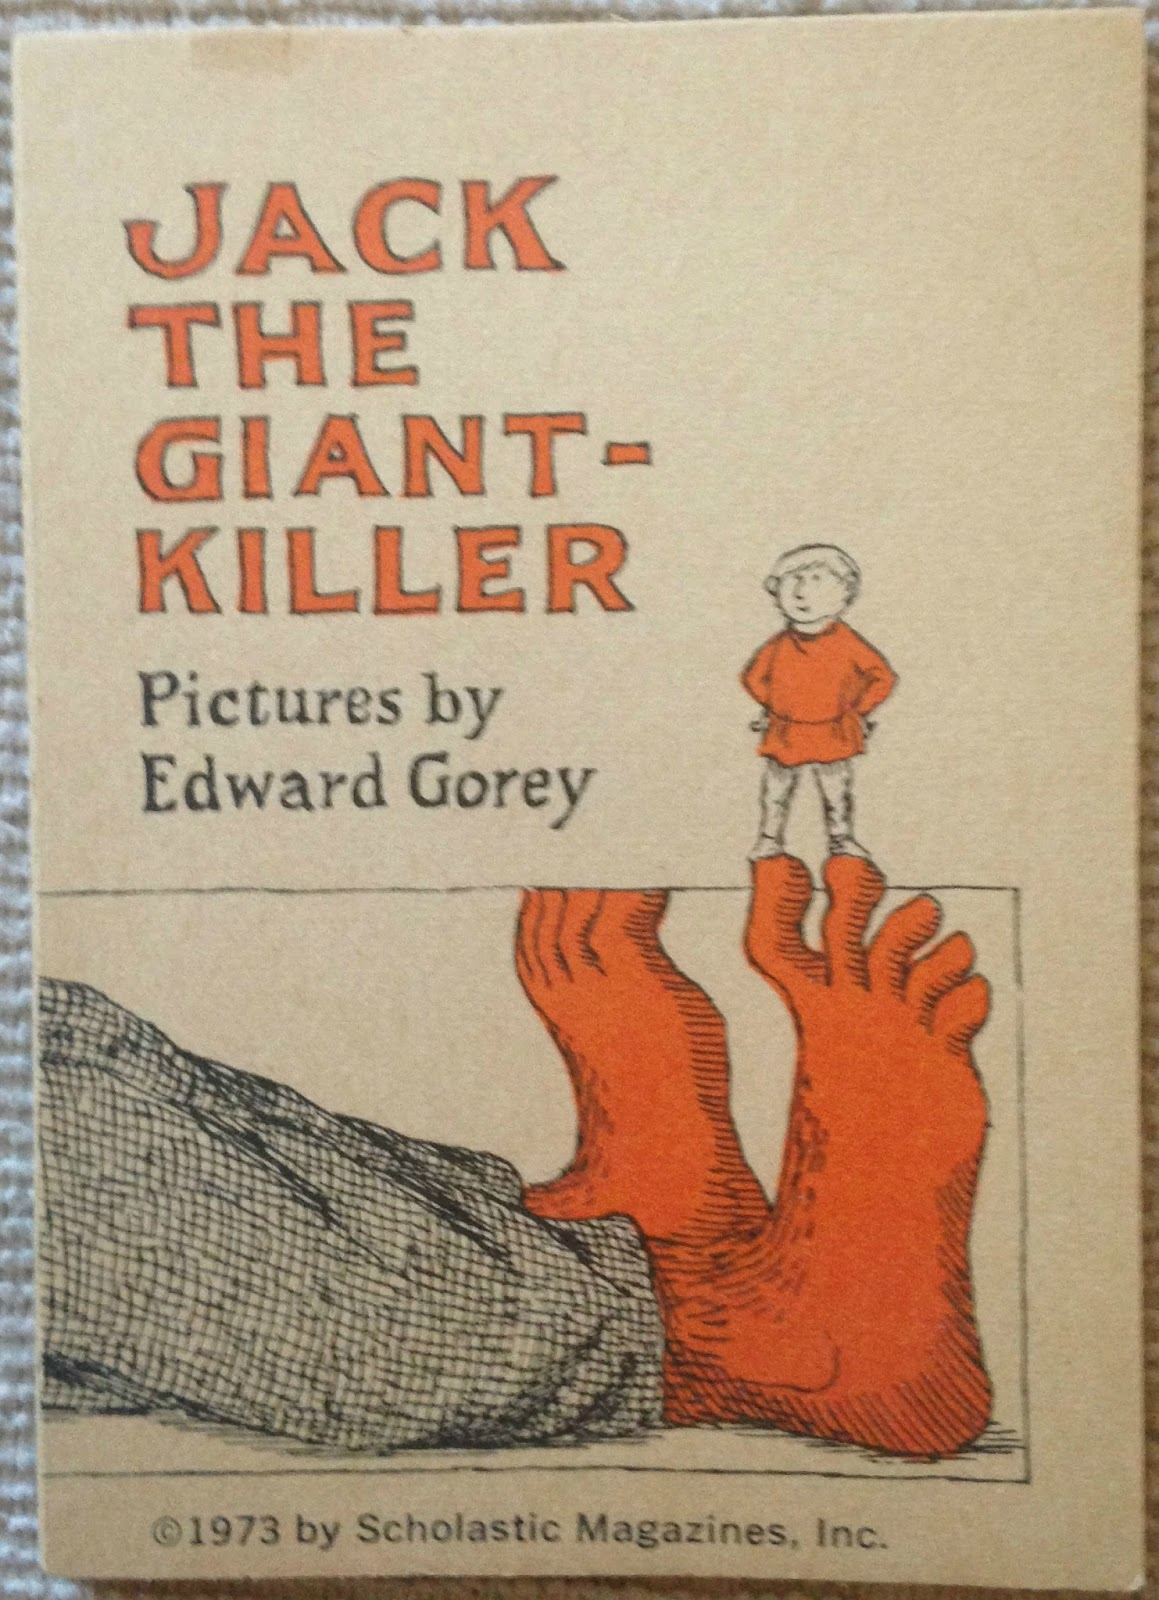 This Miniature Version Of Jack The Giant Killer Was Published In 1973 By Scholastic Magazines As Fourth Volume Its Series Lucky Mini Books